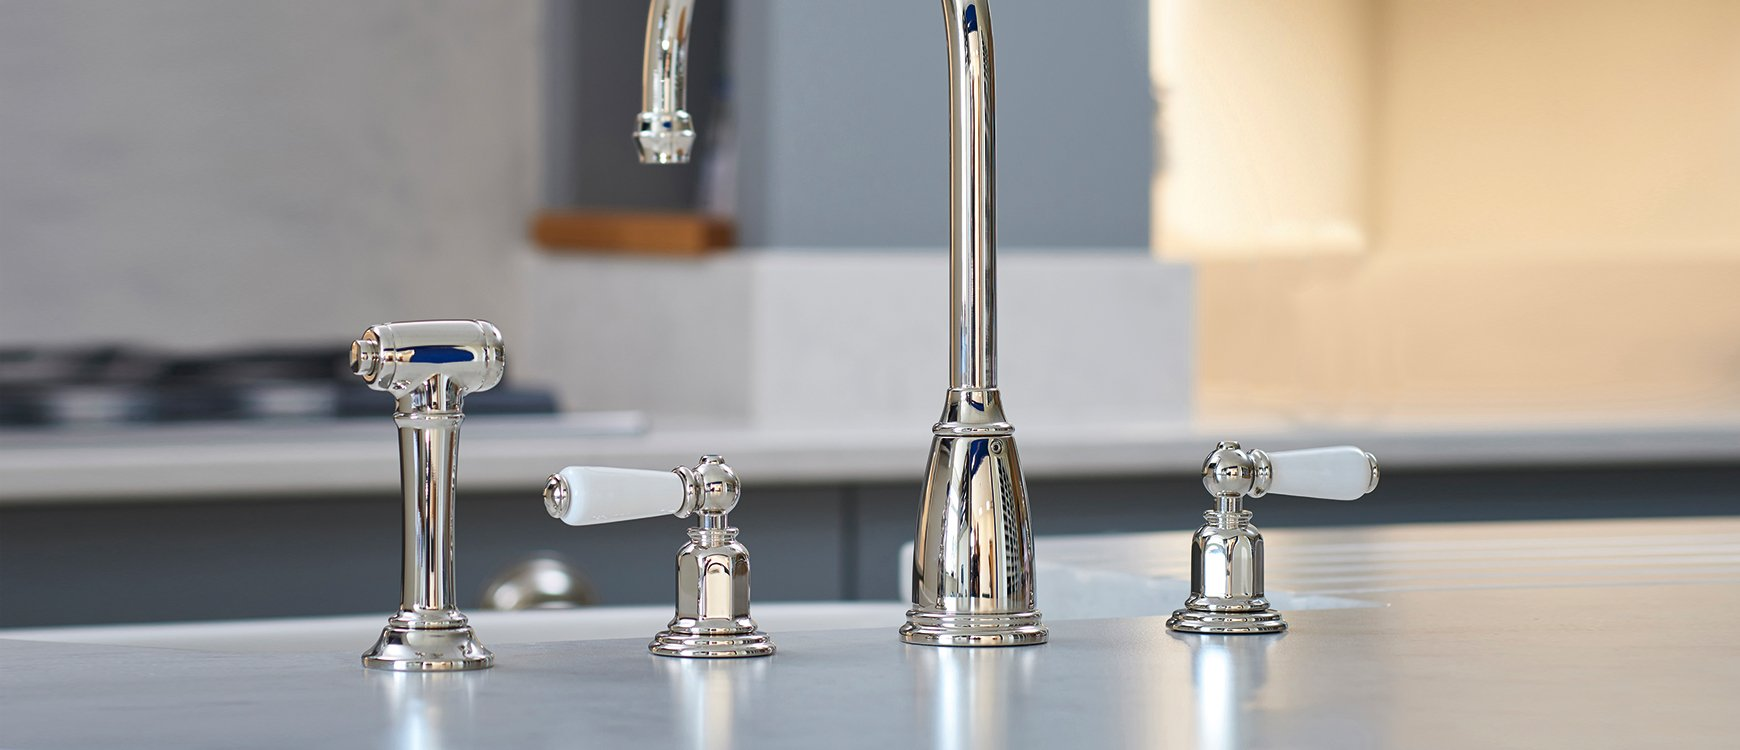 handles faucet journal featured residence athenian four rowe house and faucets s perrin hole nickel rinse mixer award taps in hero winning with lever